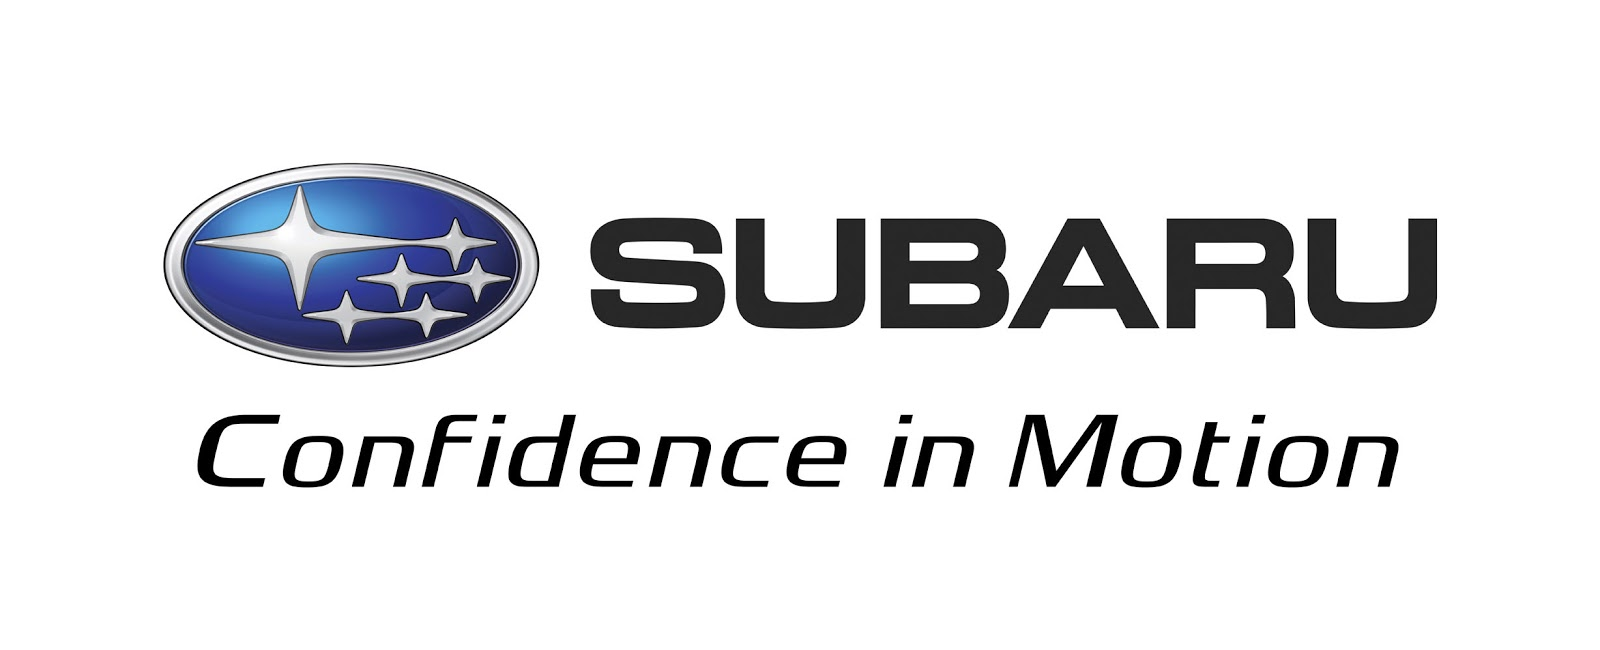 Prepare Your Subaru For Any Michigan Weather Conditions